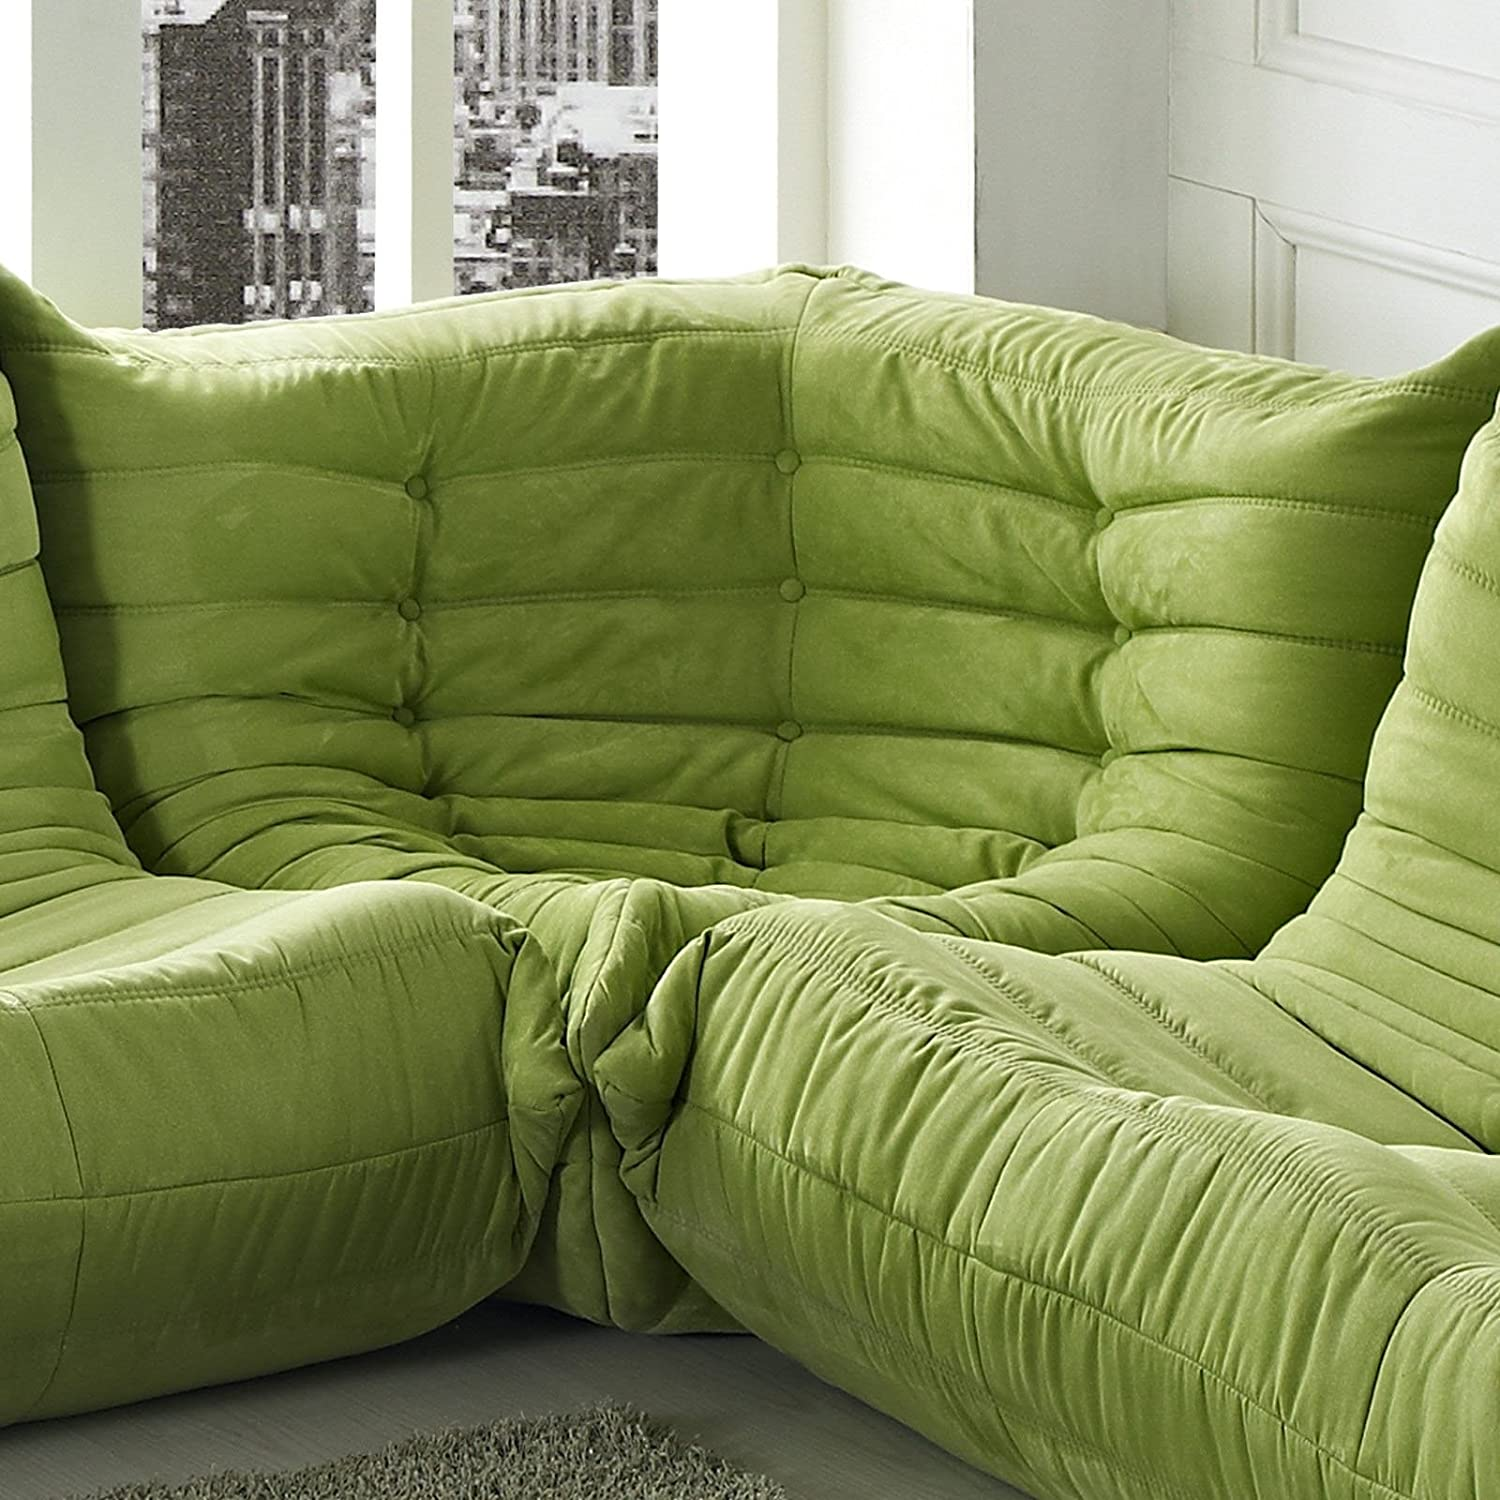 Amazon Modway Waverunner Modular Sectional Corner in Green